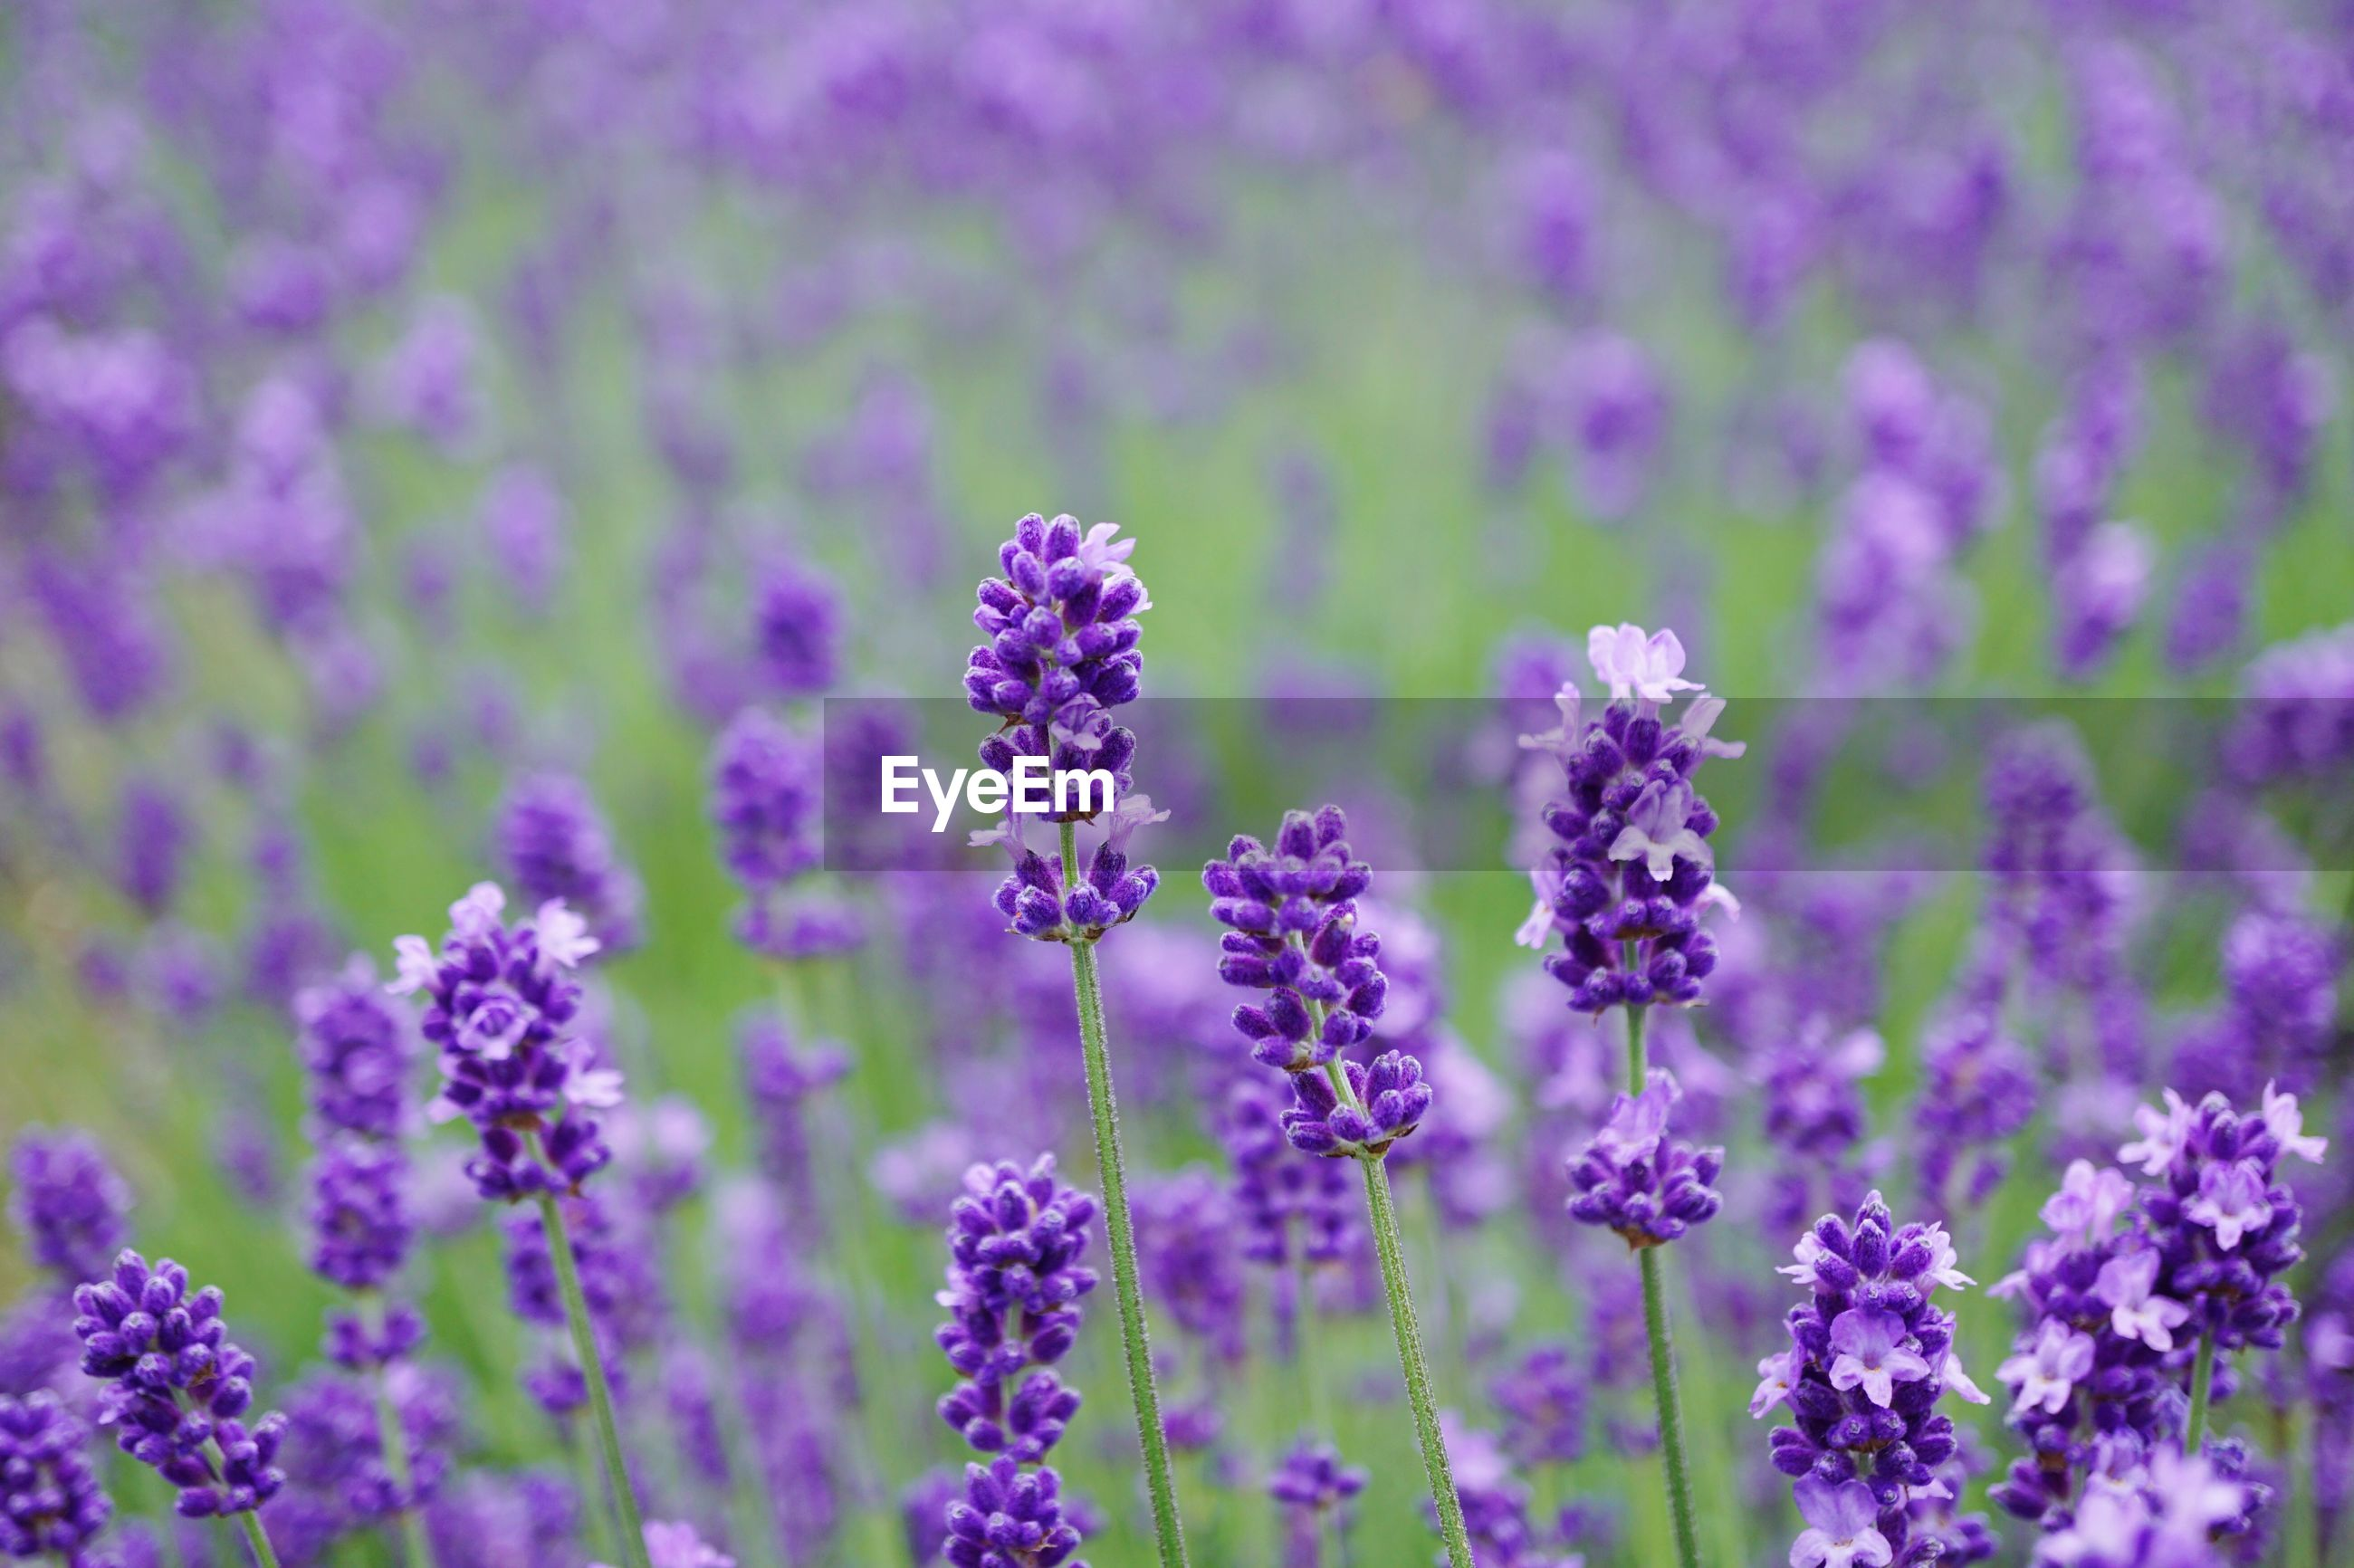 flower, plant, flowering plant, beauty in nature, growth, purple, freshness, fragility, vulnerability, lavender, close-up, field, no people, nature, petal, focus on foreground, land, selective focus, lavender colored, day, flower head, outdoors